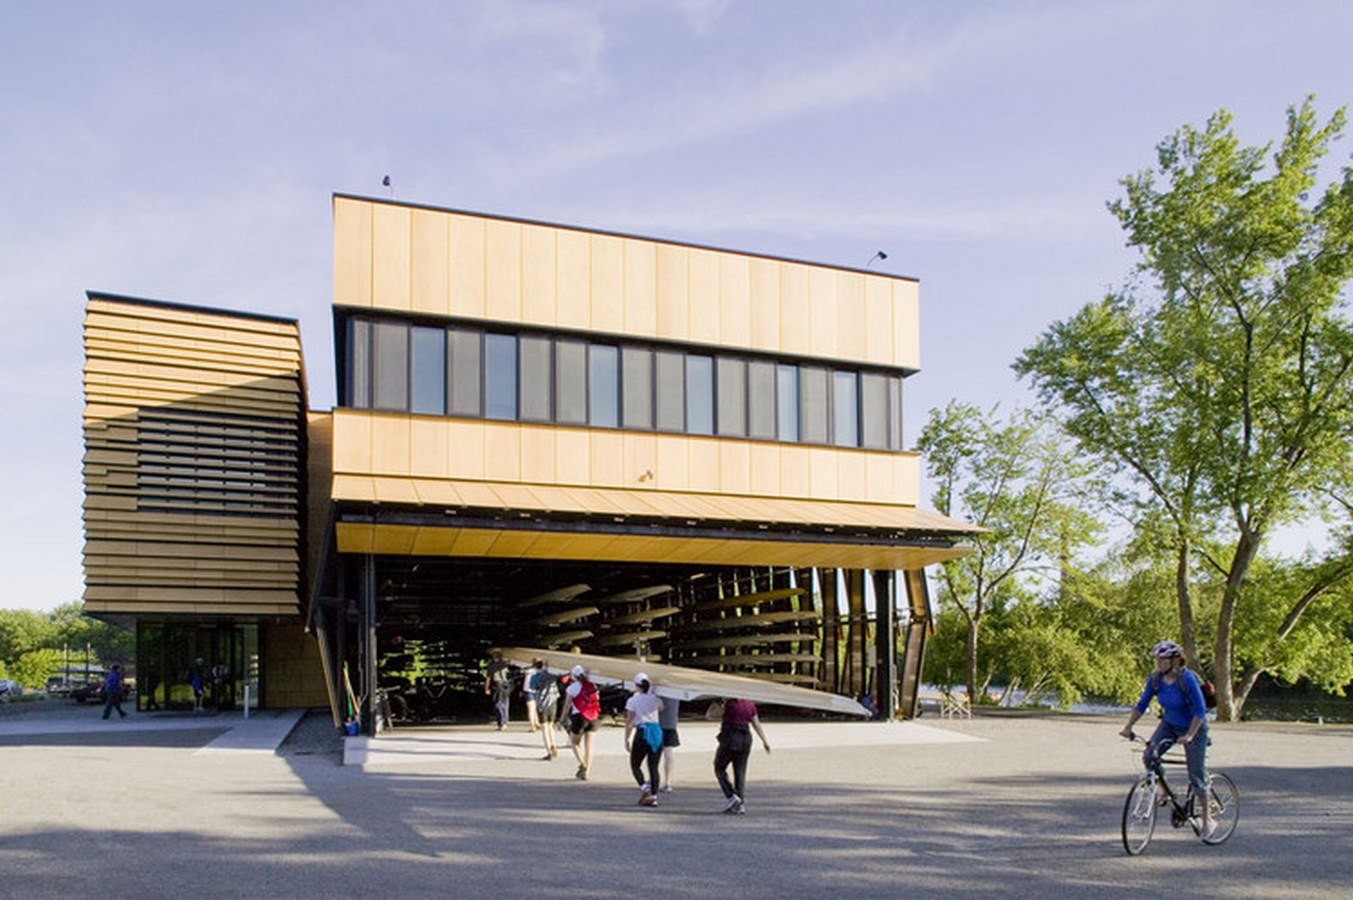 25 Most Iconic Structures In Boston - COMMUNITY ROWING BOATHOUSE - Sheet1